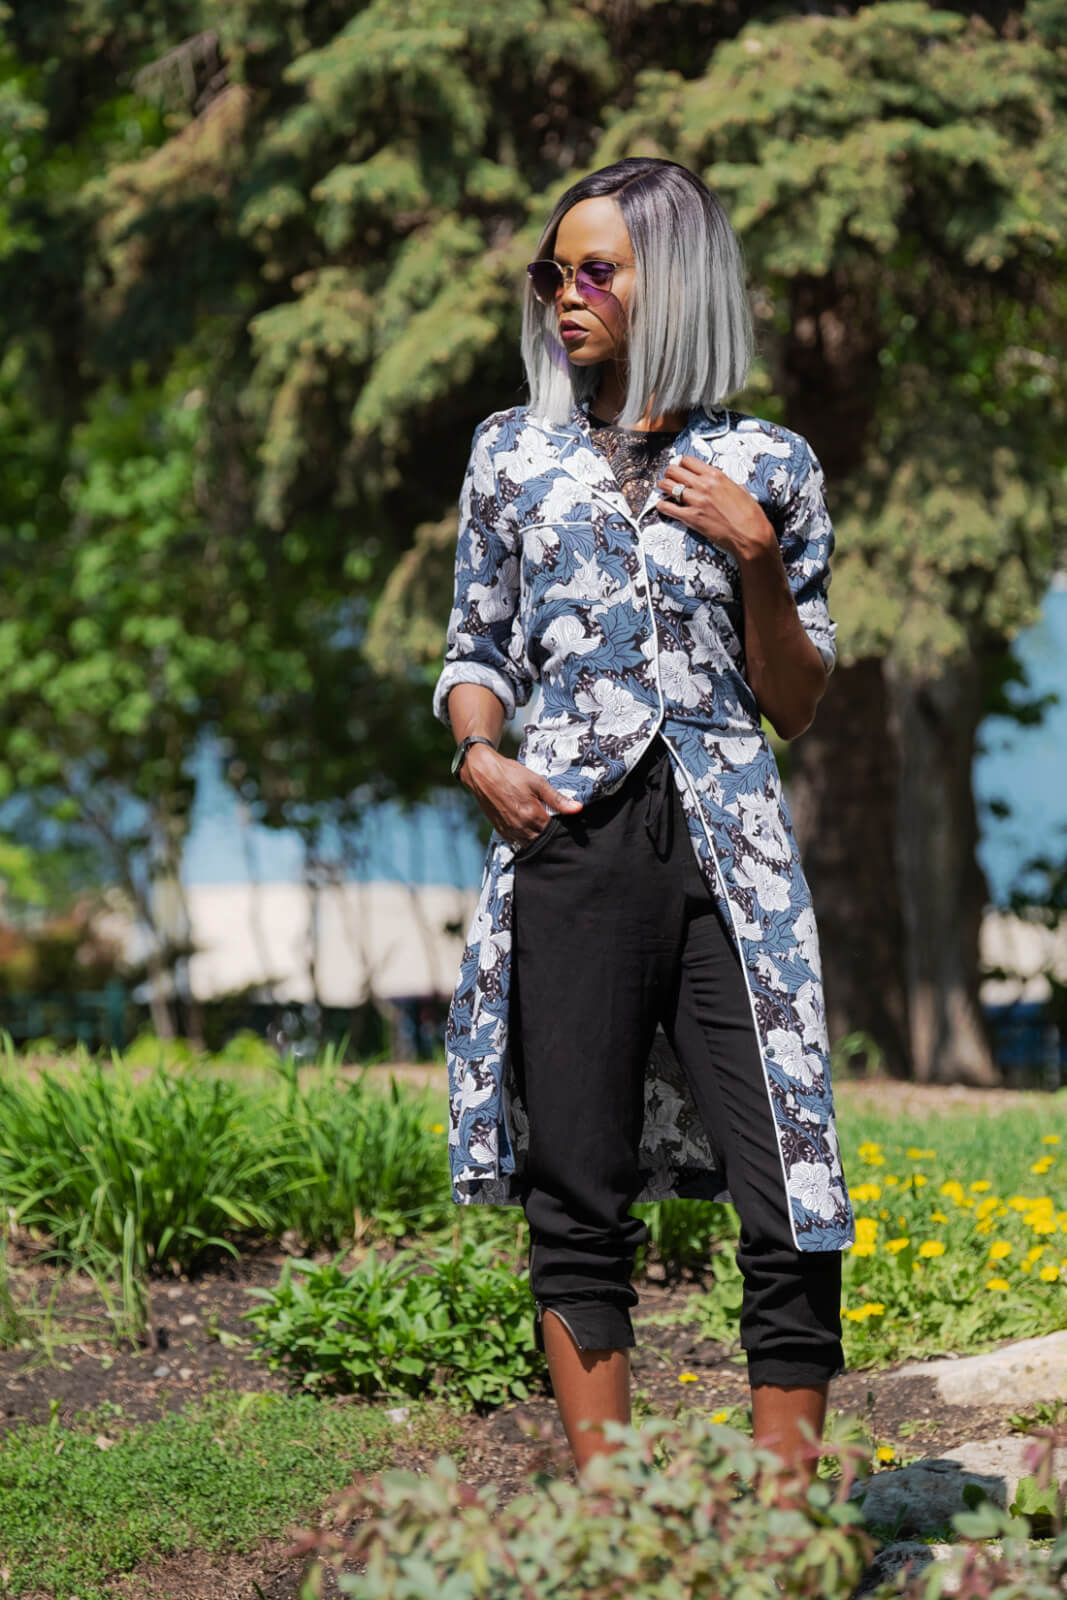 Summer Florals, Summer Fashion, Printed Dresses, Style My Dreams Blog, WInnipeg Fashion Blogger, Outfit ideas, Summer Outfit Ideas